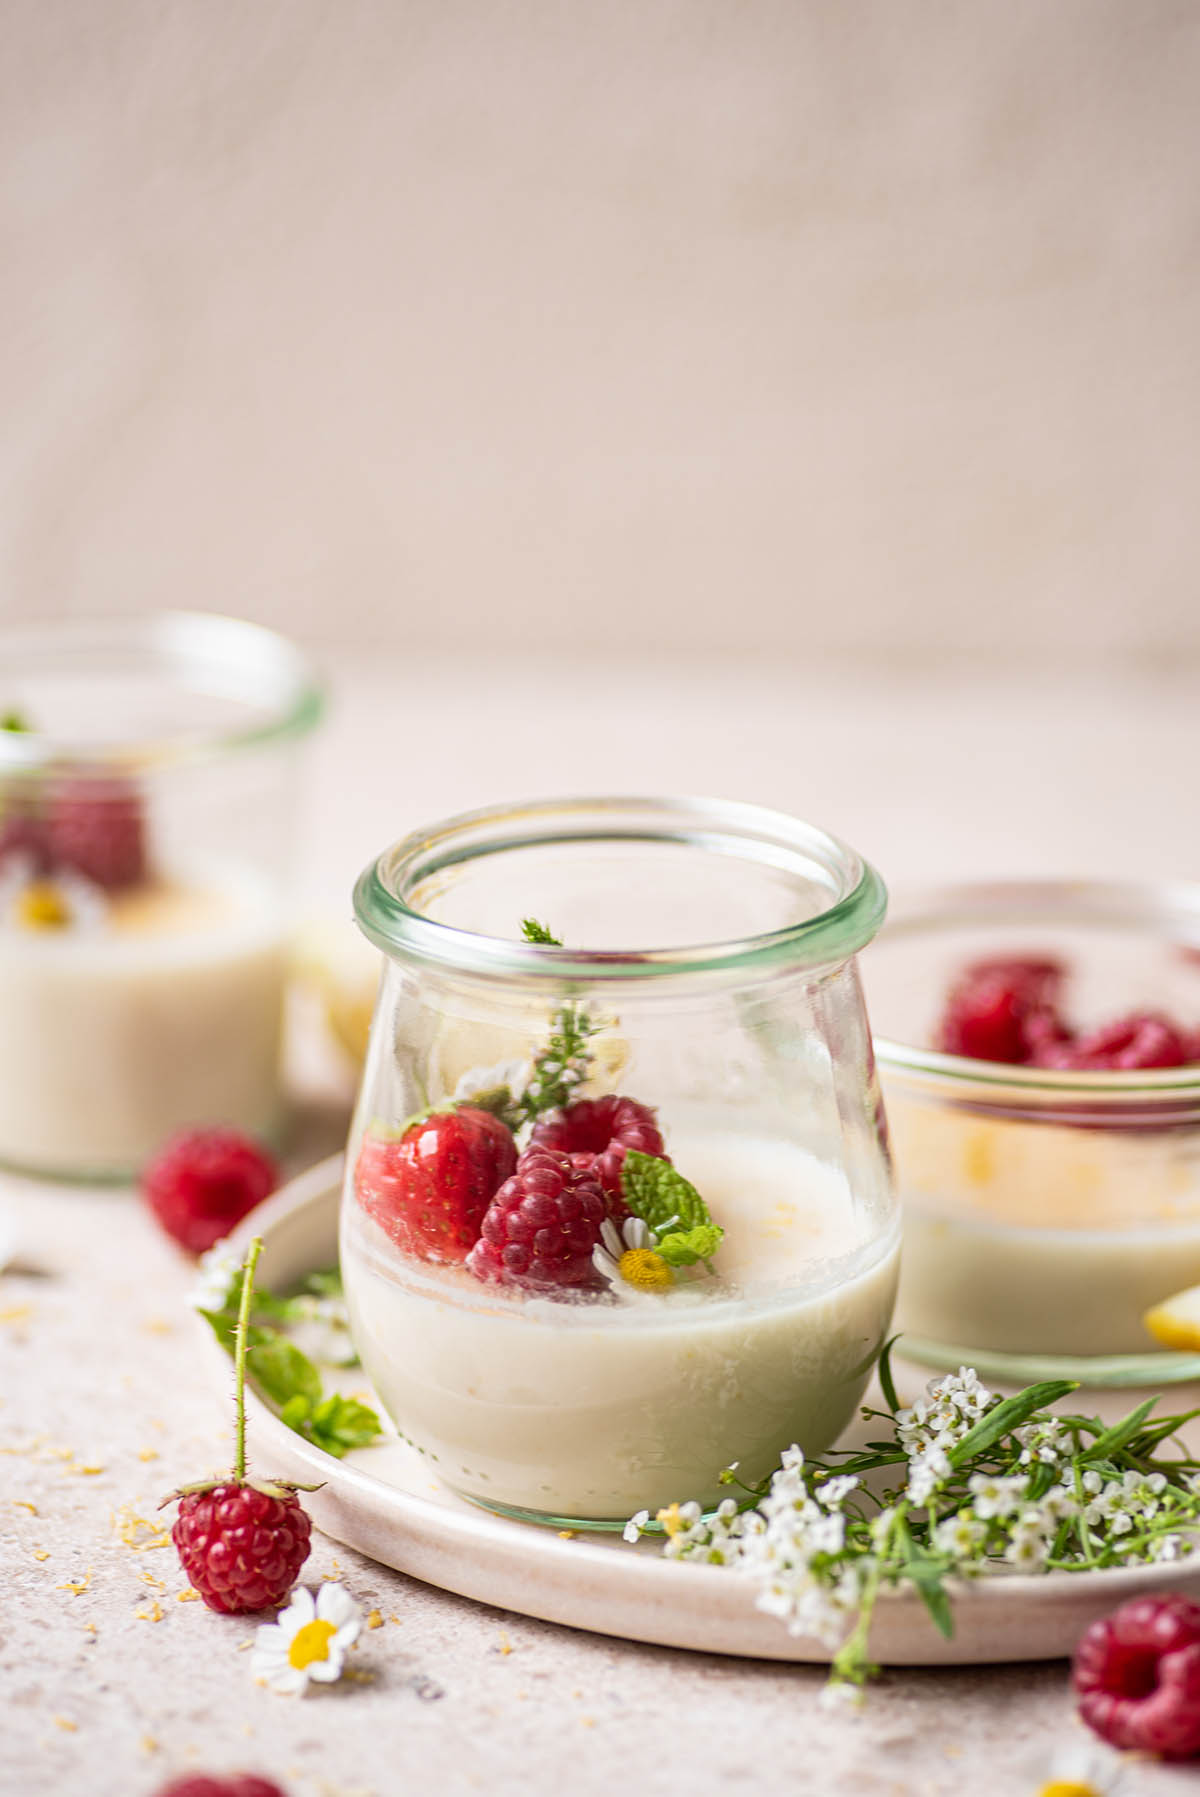 A half-full jar of panna cotta on a plate with berries and mint.